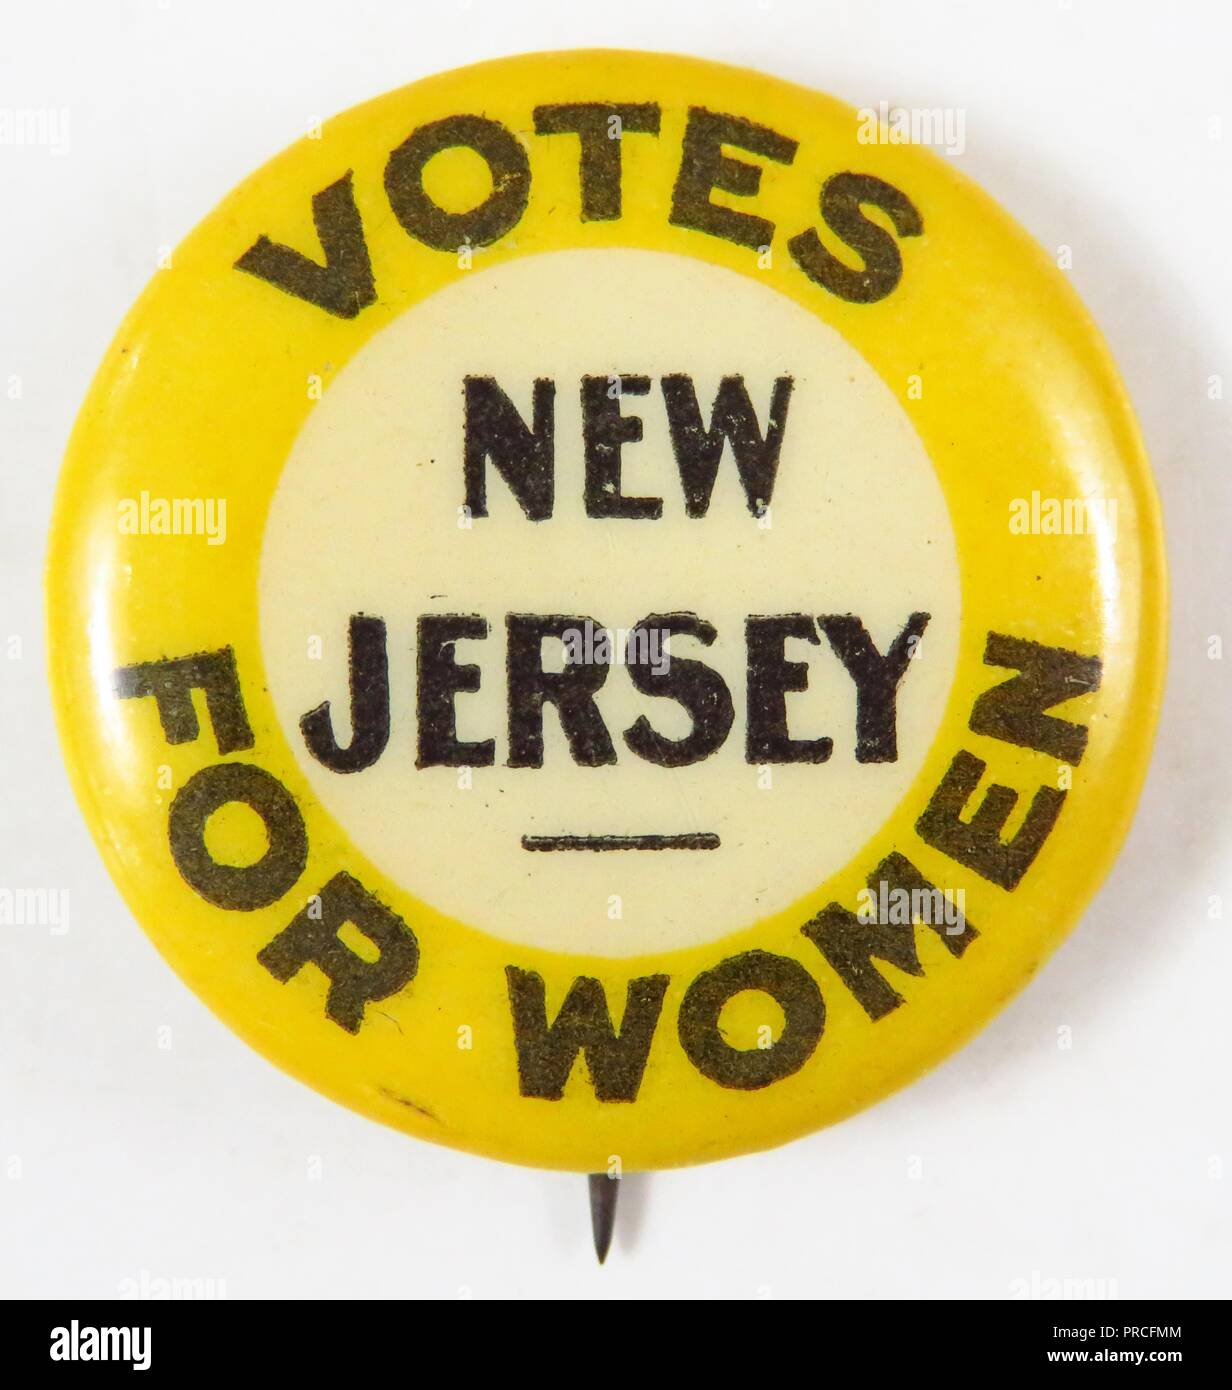 Yellow, black, and white suffrage pin, with the text 'Votes for Women, New Jersey, ' manufactured or the American market, by the New Jersey Woman Suffrage Association, 1915. Photography by Emilia van Beugen. () - Stock Image